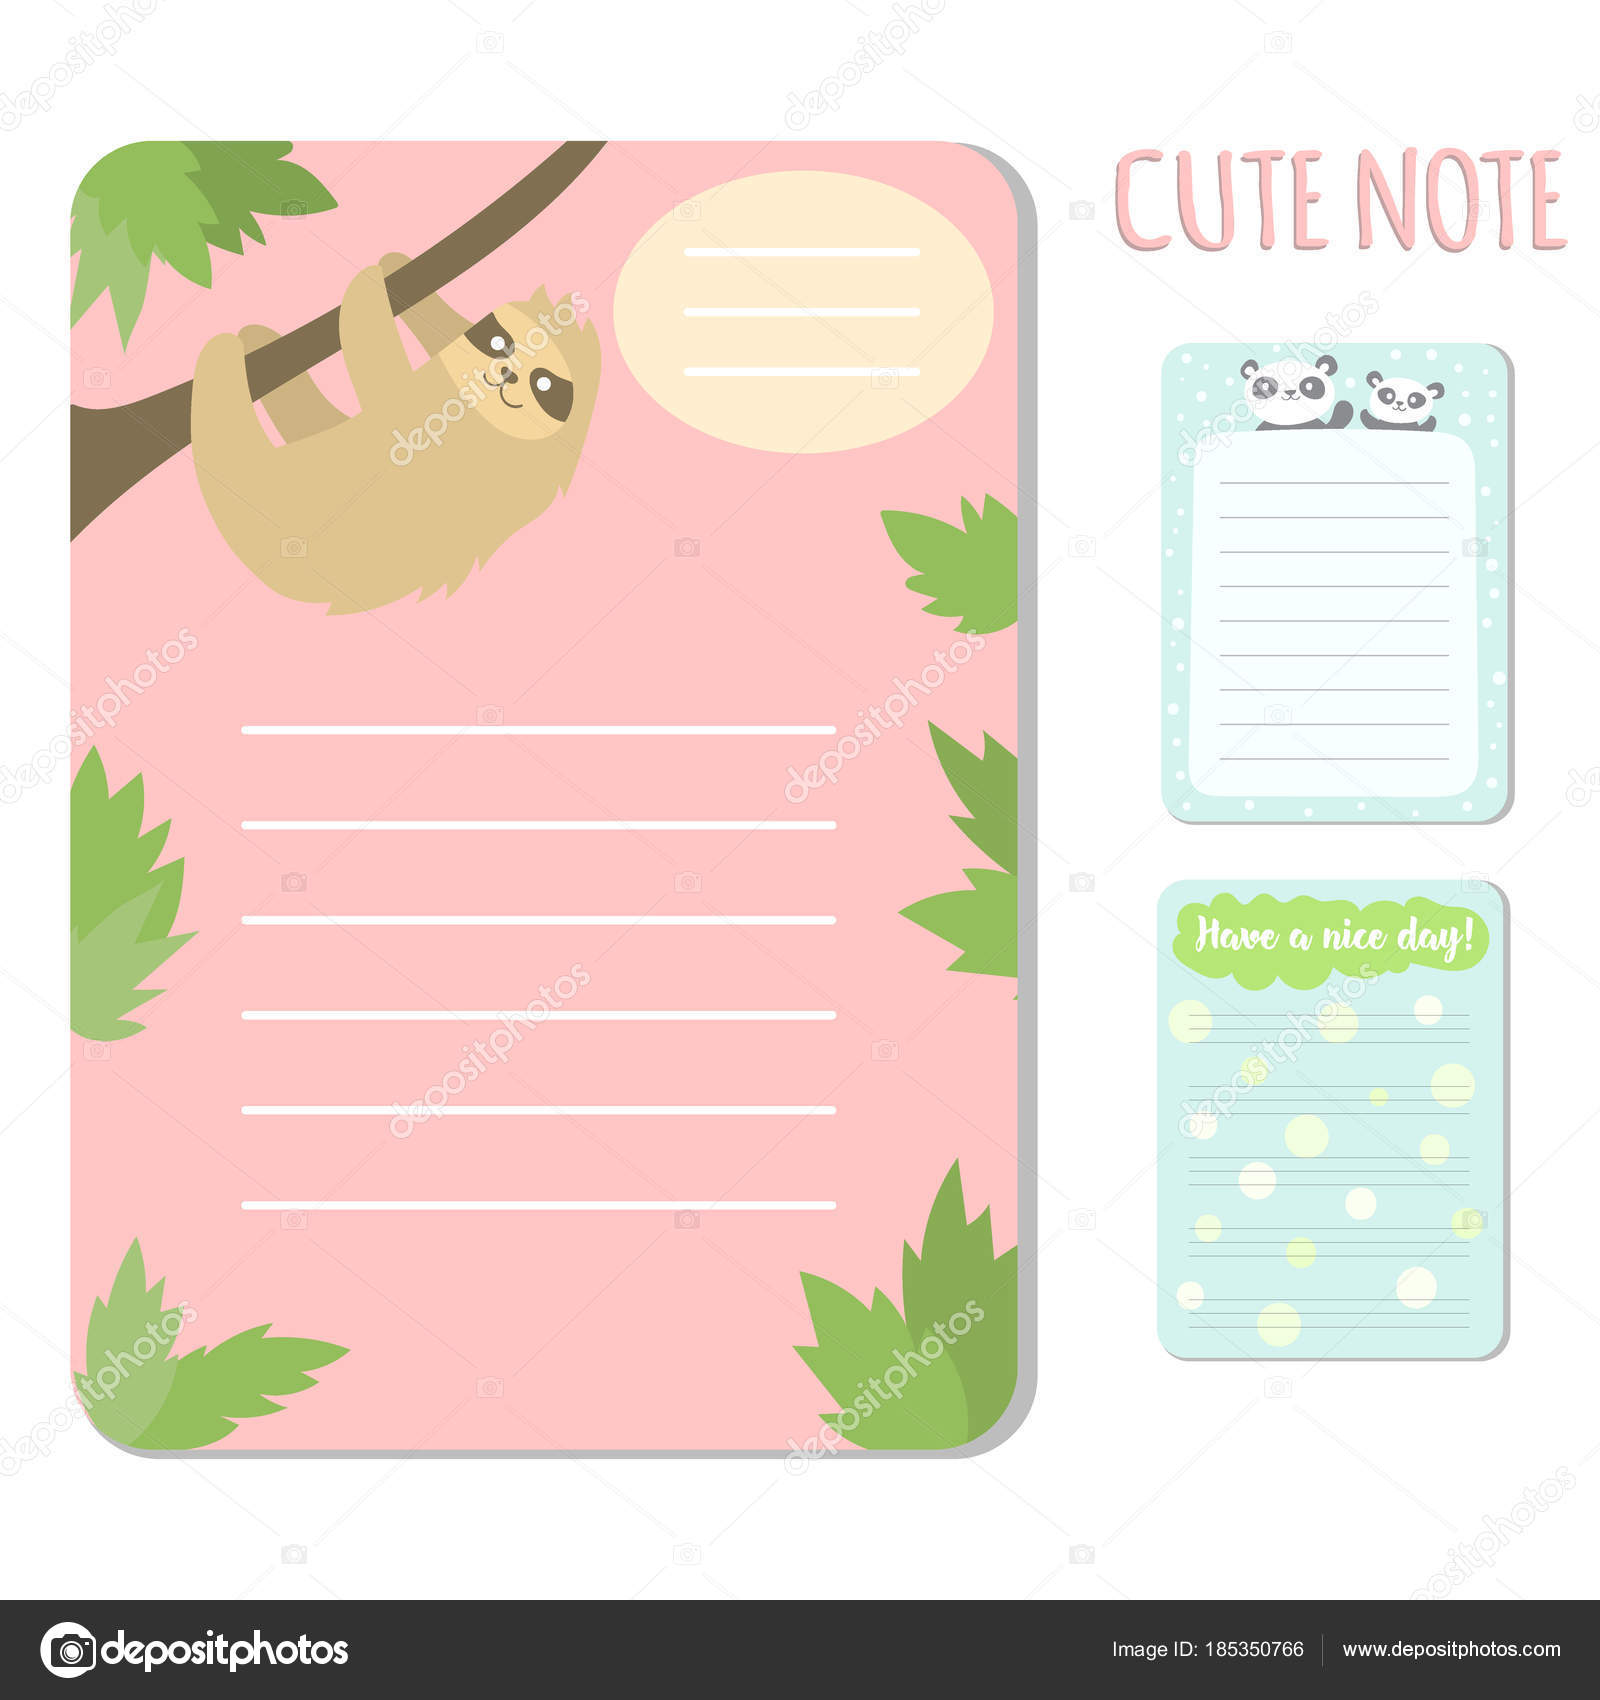 Baby shower invitations cards vector note list poster greeting baby shower invitations cards vector note list poster greeting template kids paper layout design sheets dairy filmwisefo